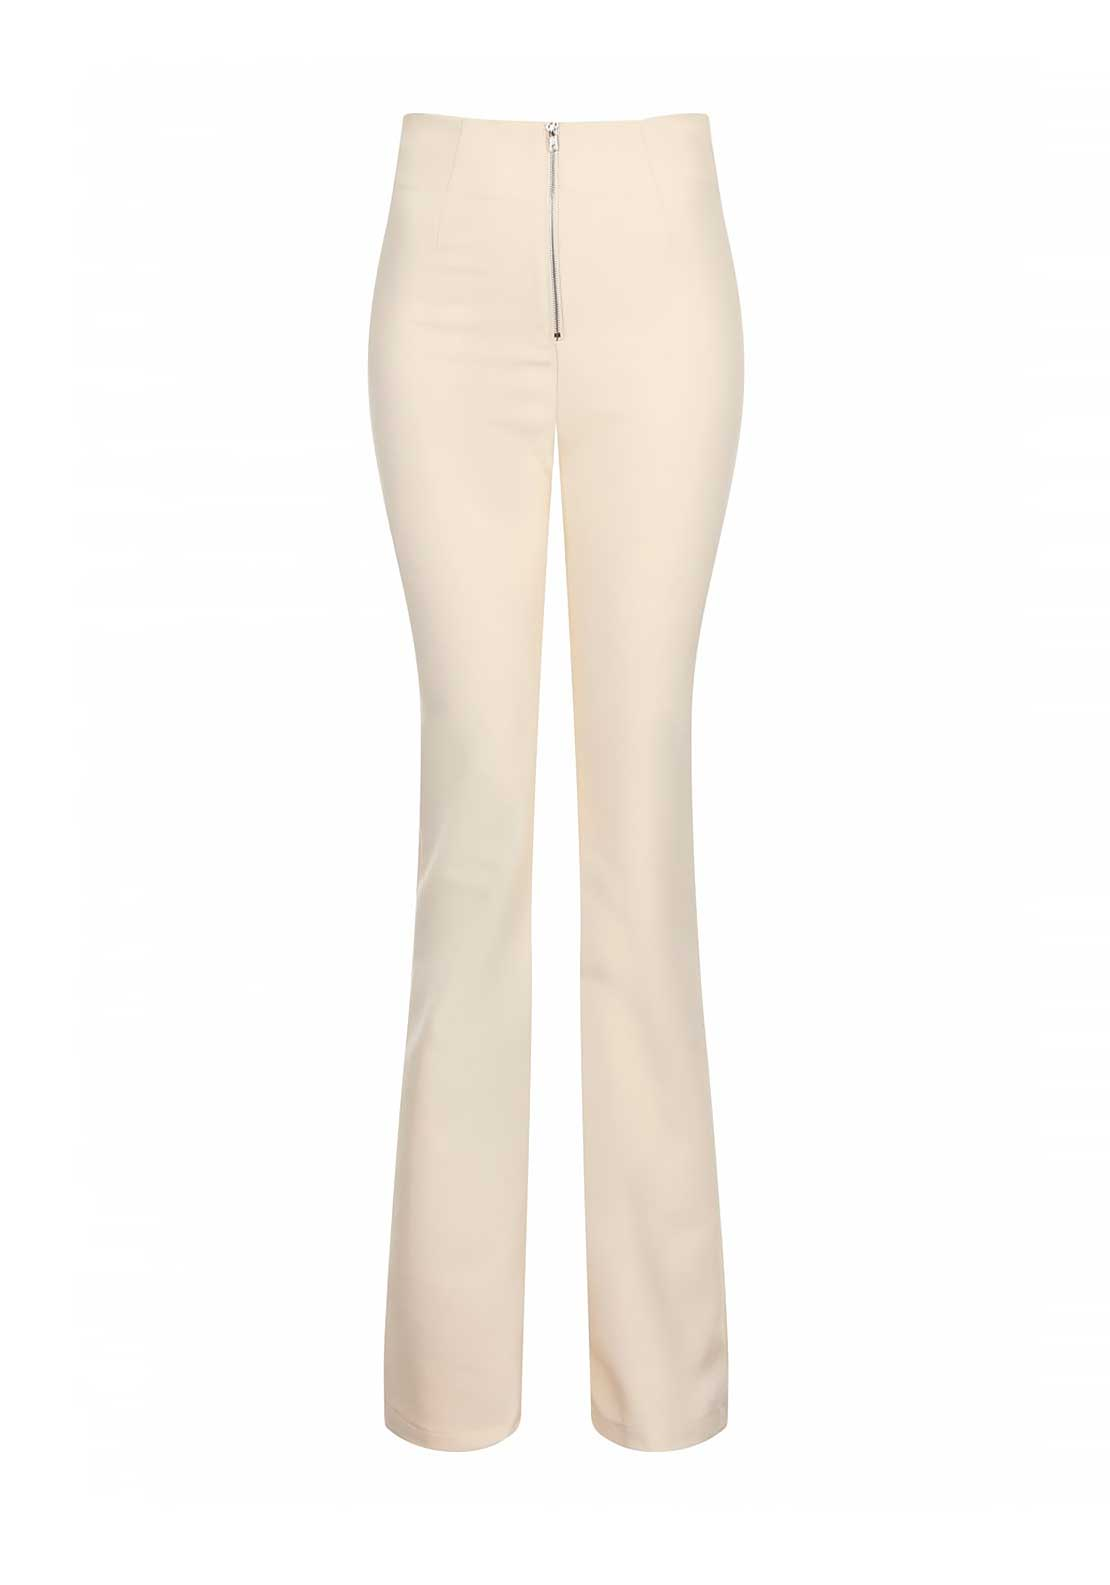 Lavish Alice Lindsay Lohan High Waist Zip Detail Flare Trousers, Cream